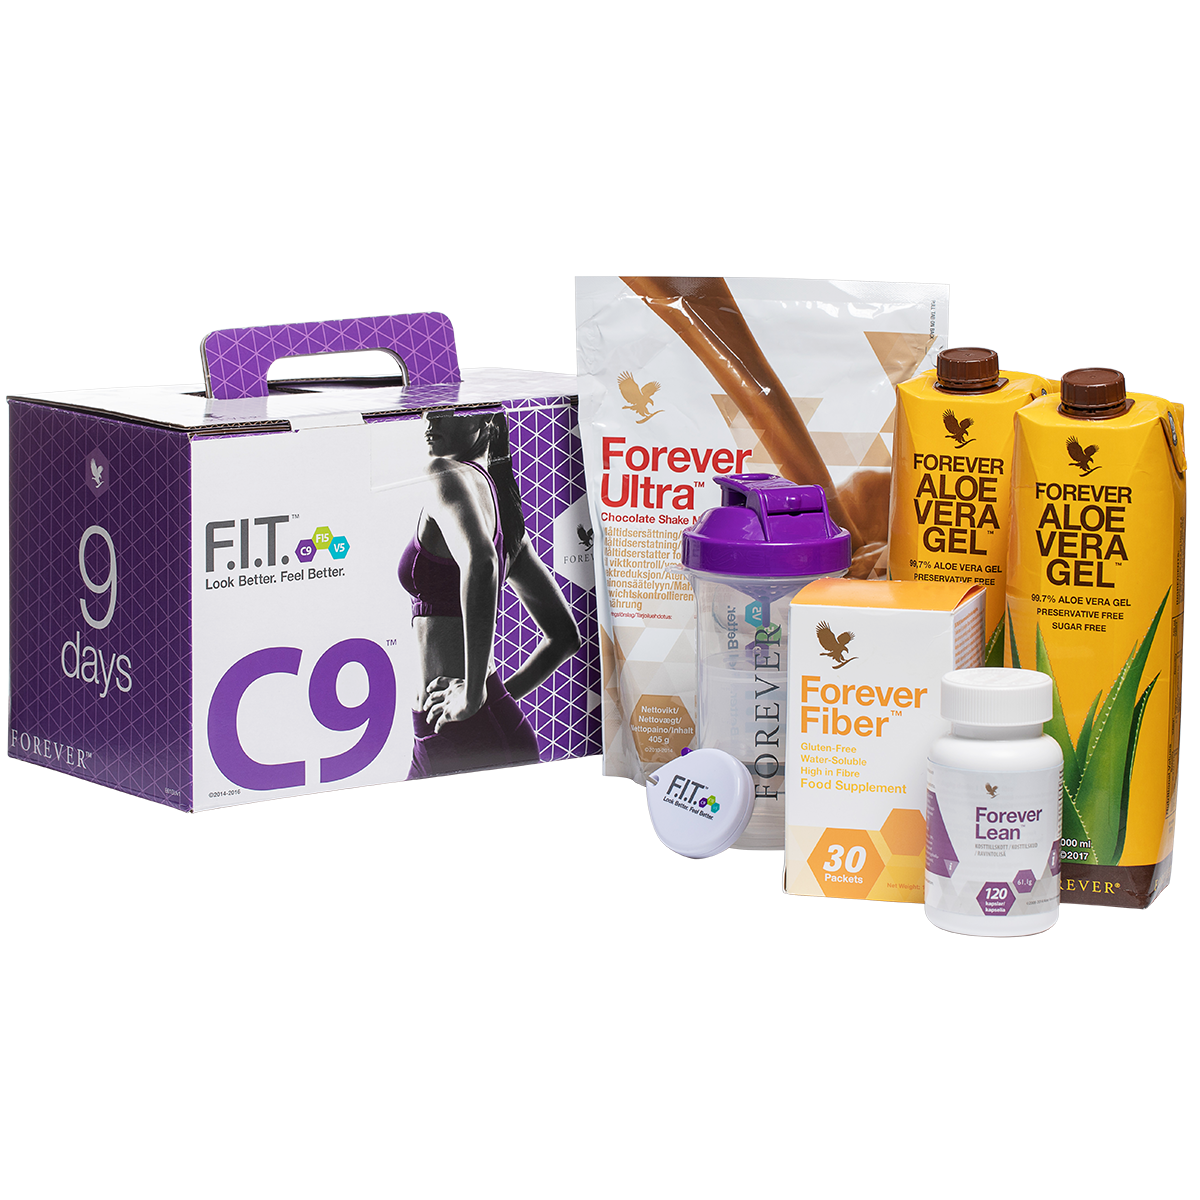 LE C9 Programme FIT - NutriLIFE Experts - Aloe Vera - Forever Living - Forever CLEAN 9